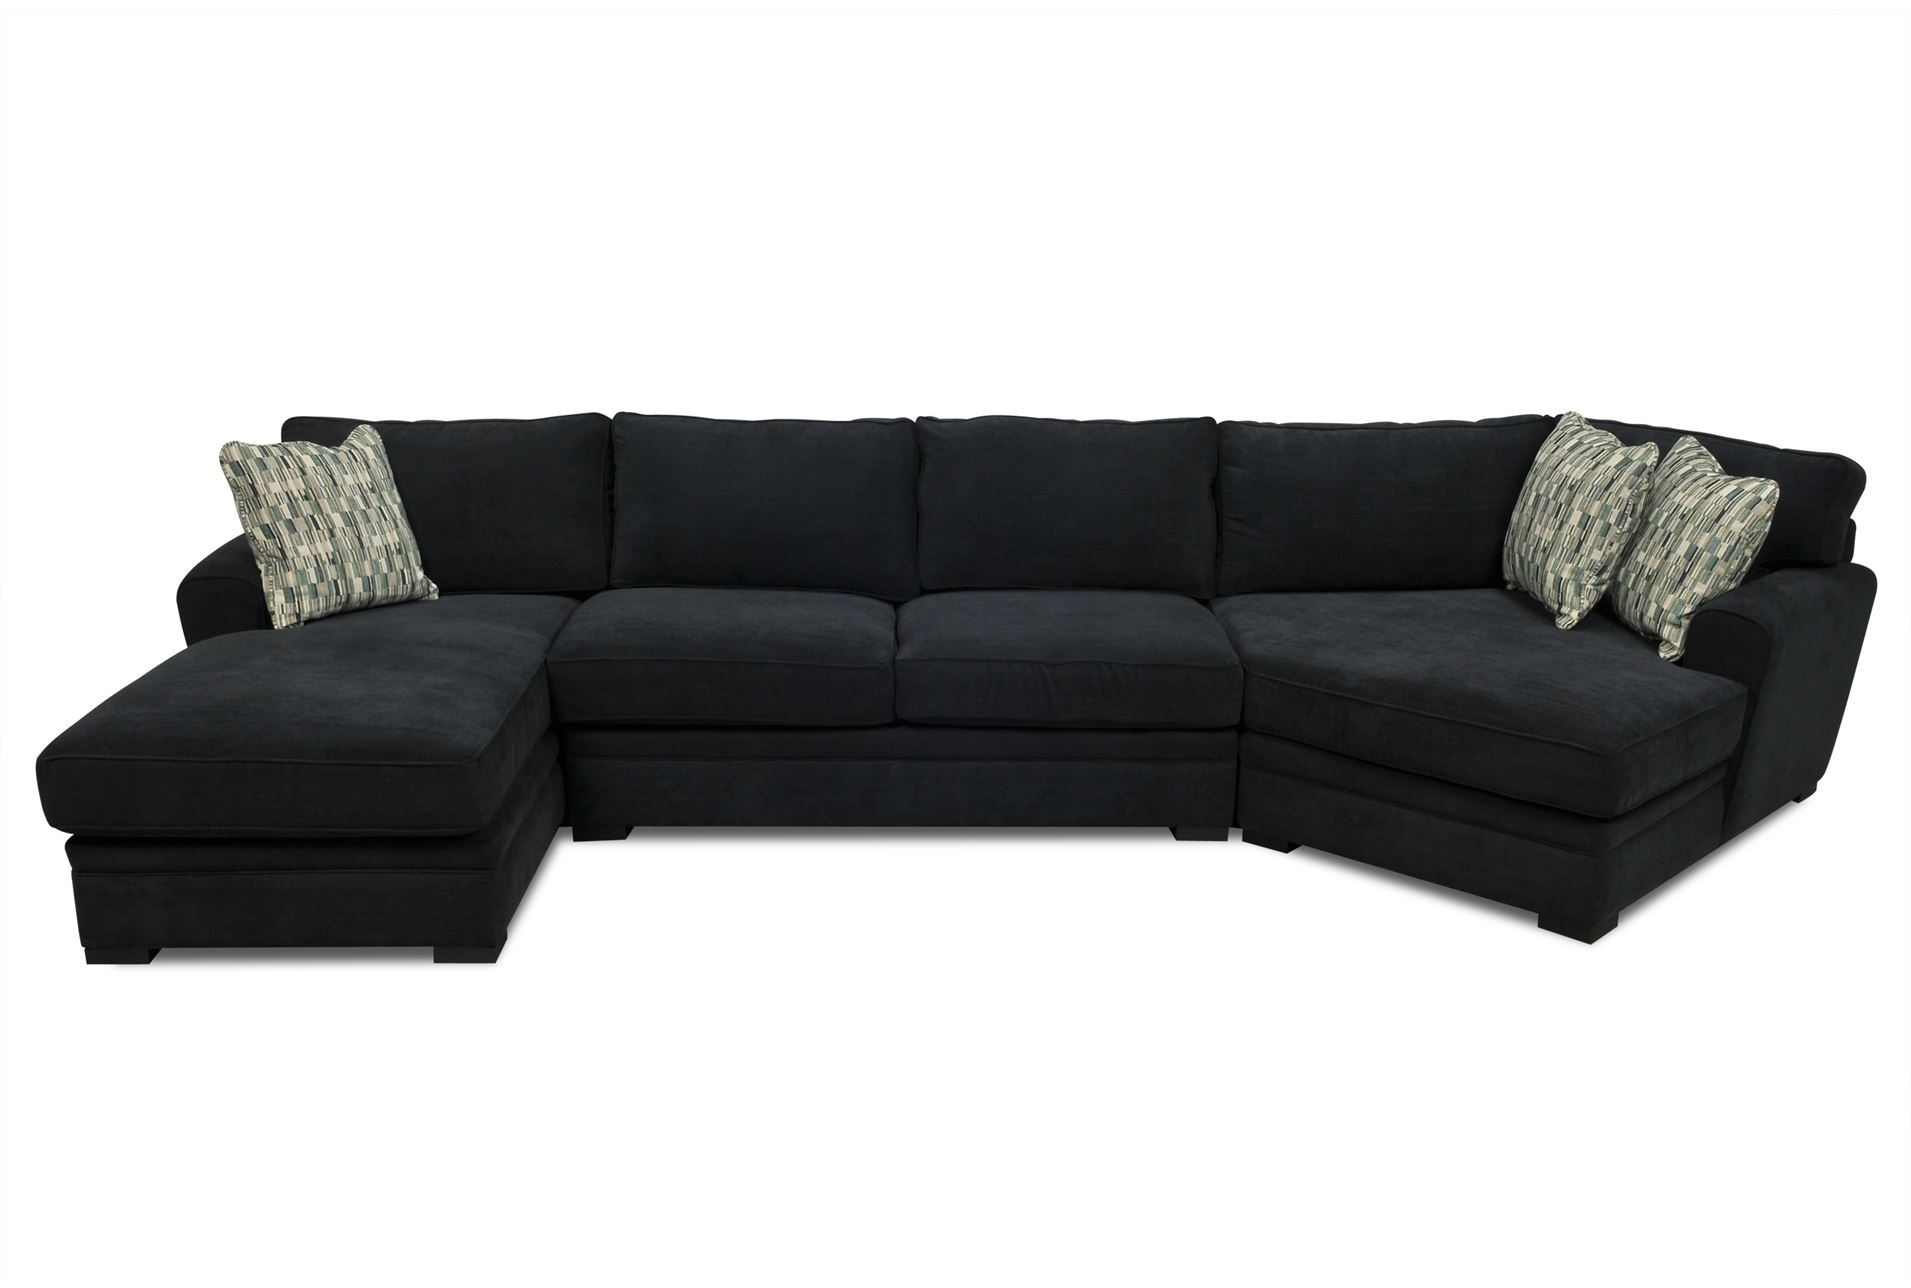 15 ideas of sectional sofas at aarons for Large 3 piece sectional sofa